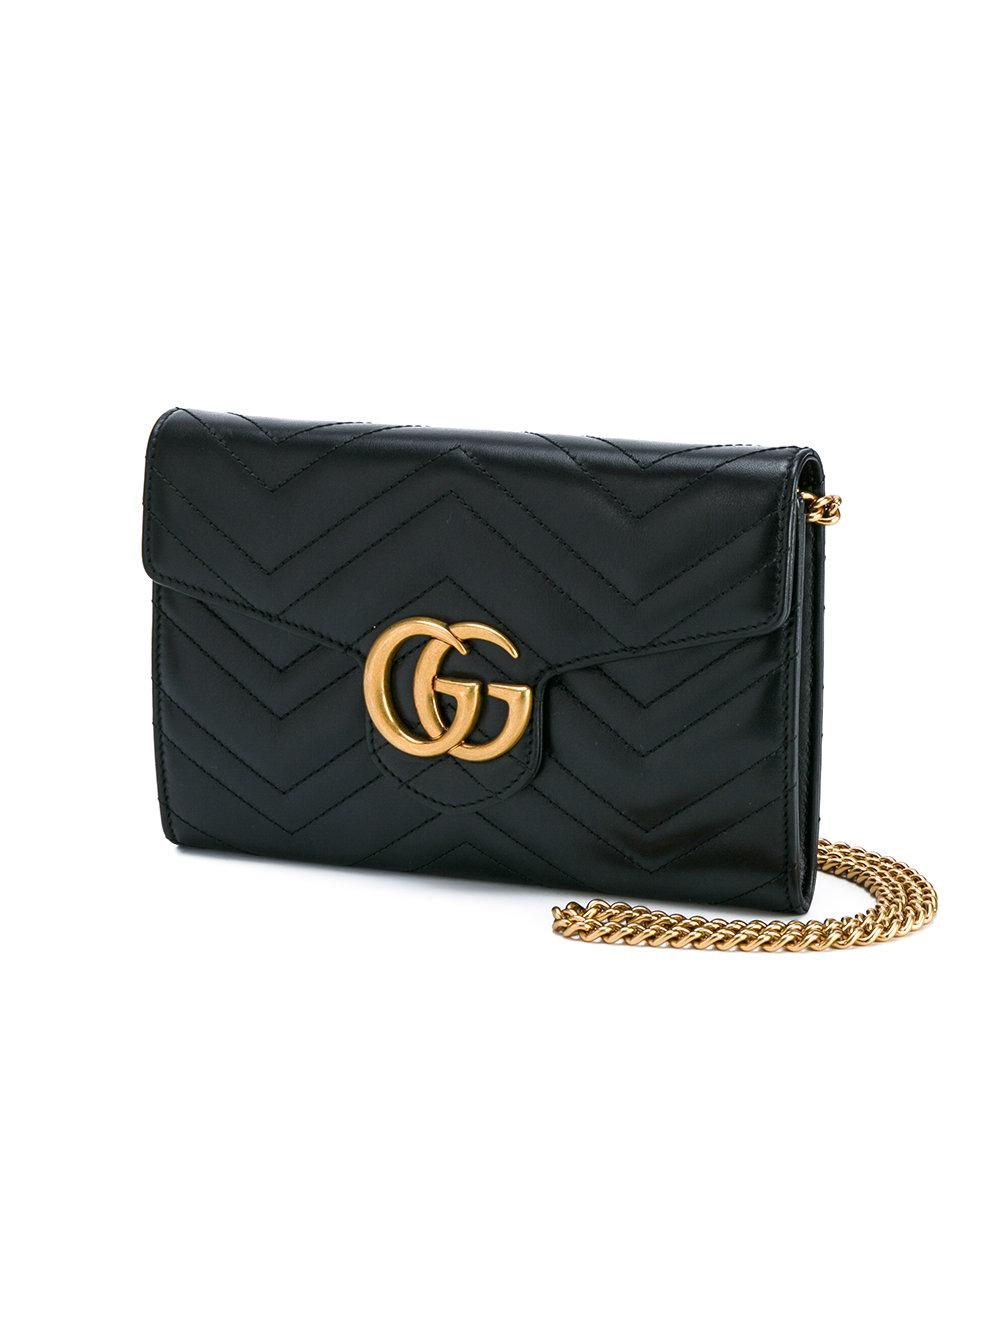 99777051410a1d Gucci Gg Marmont Matelasse Leather Pouch 476440 - Ontario Active ...